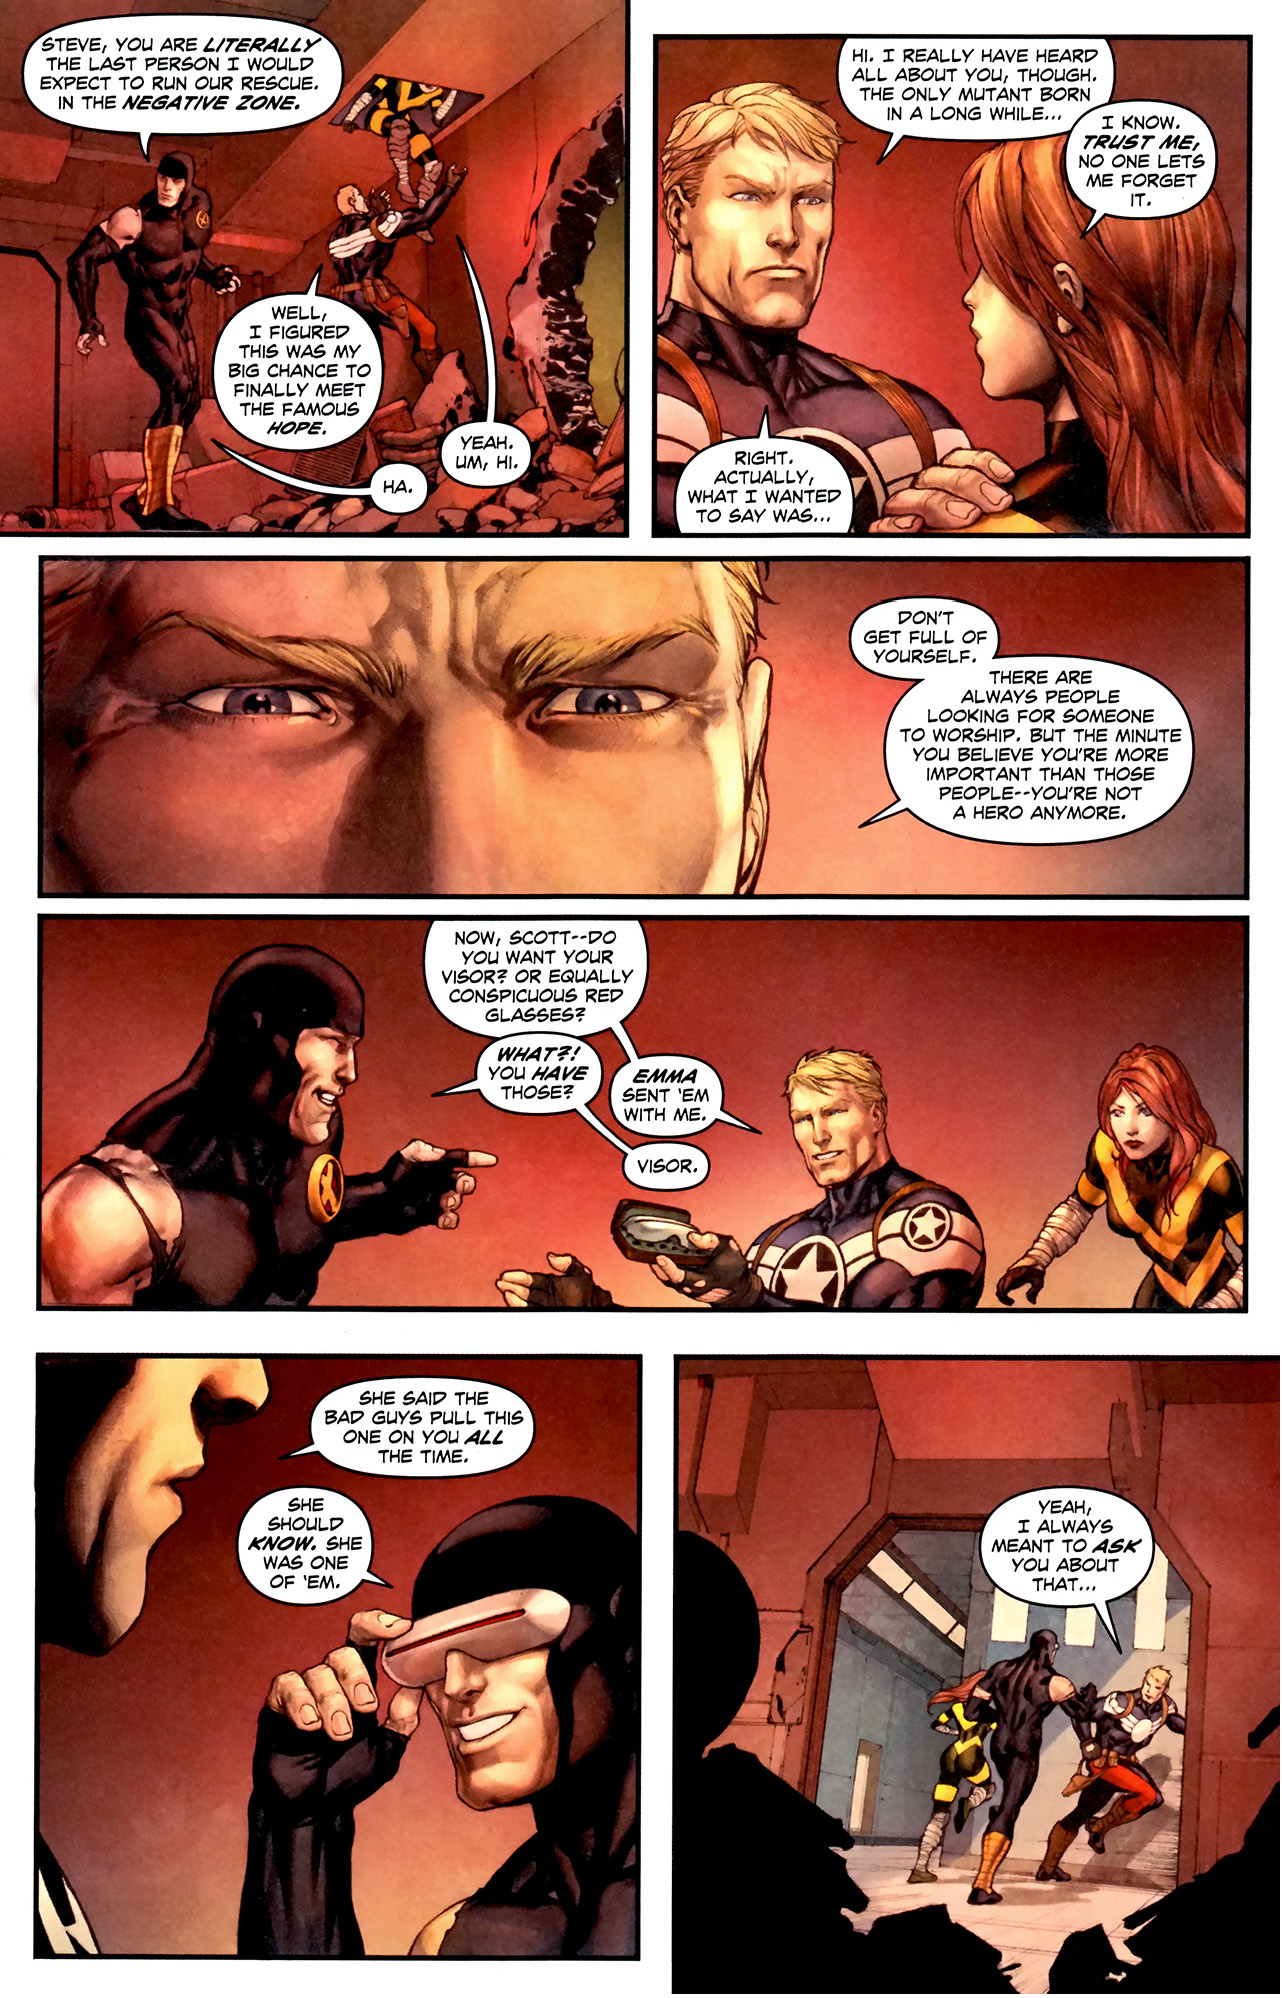 what bad guys pull on cyclops all the time